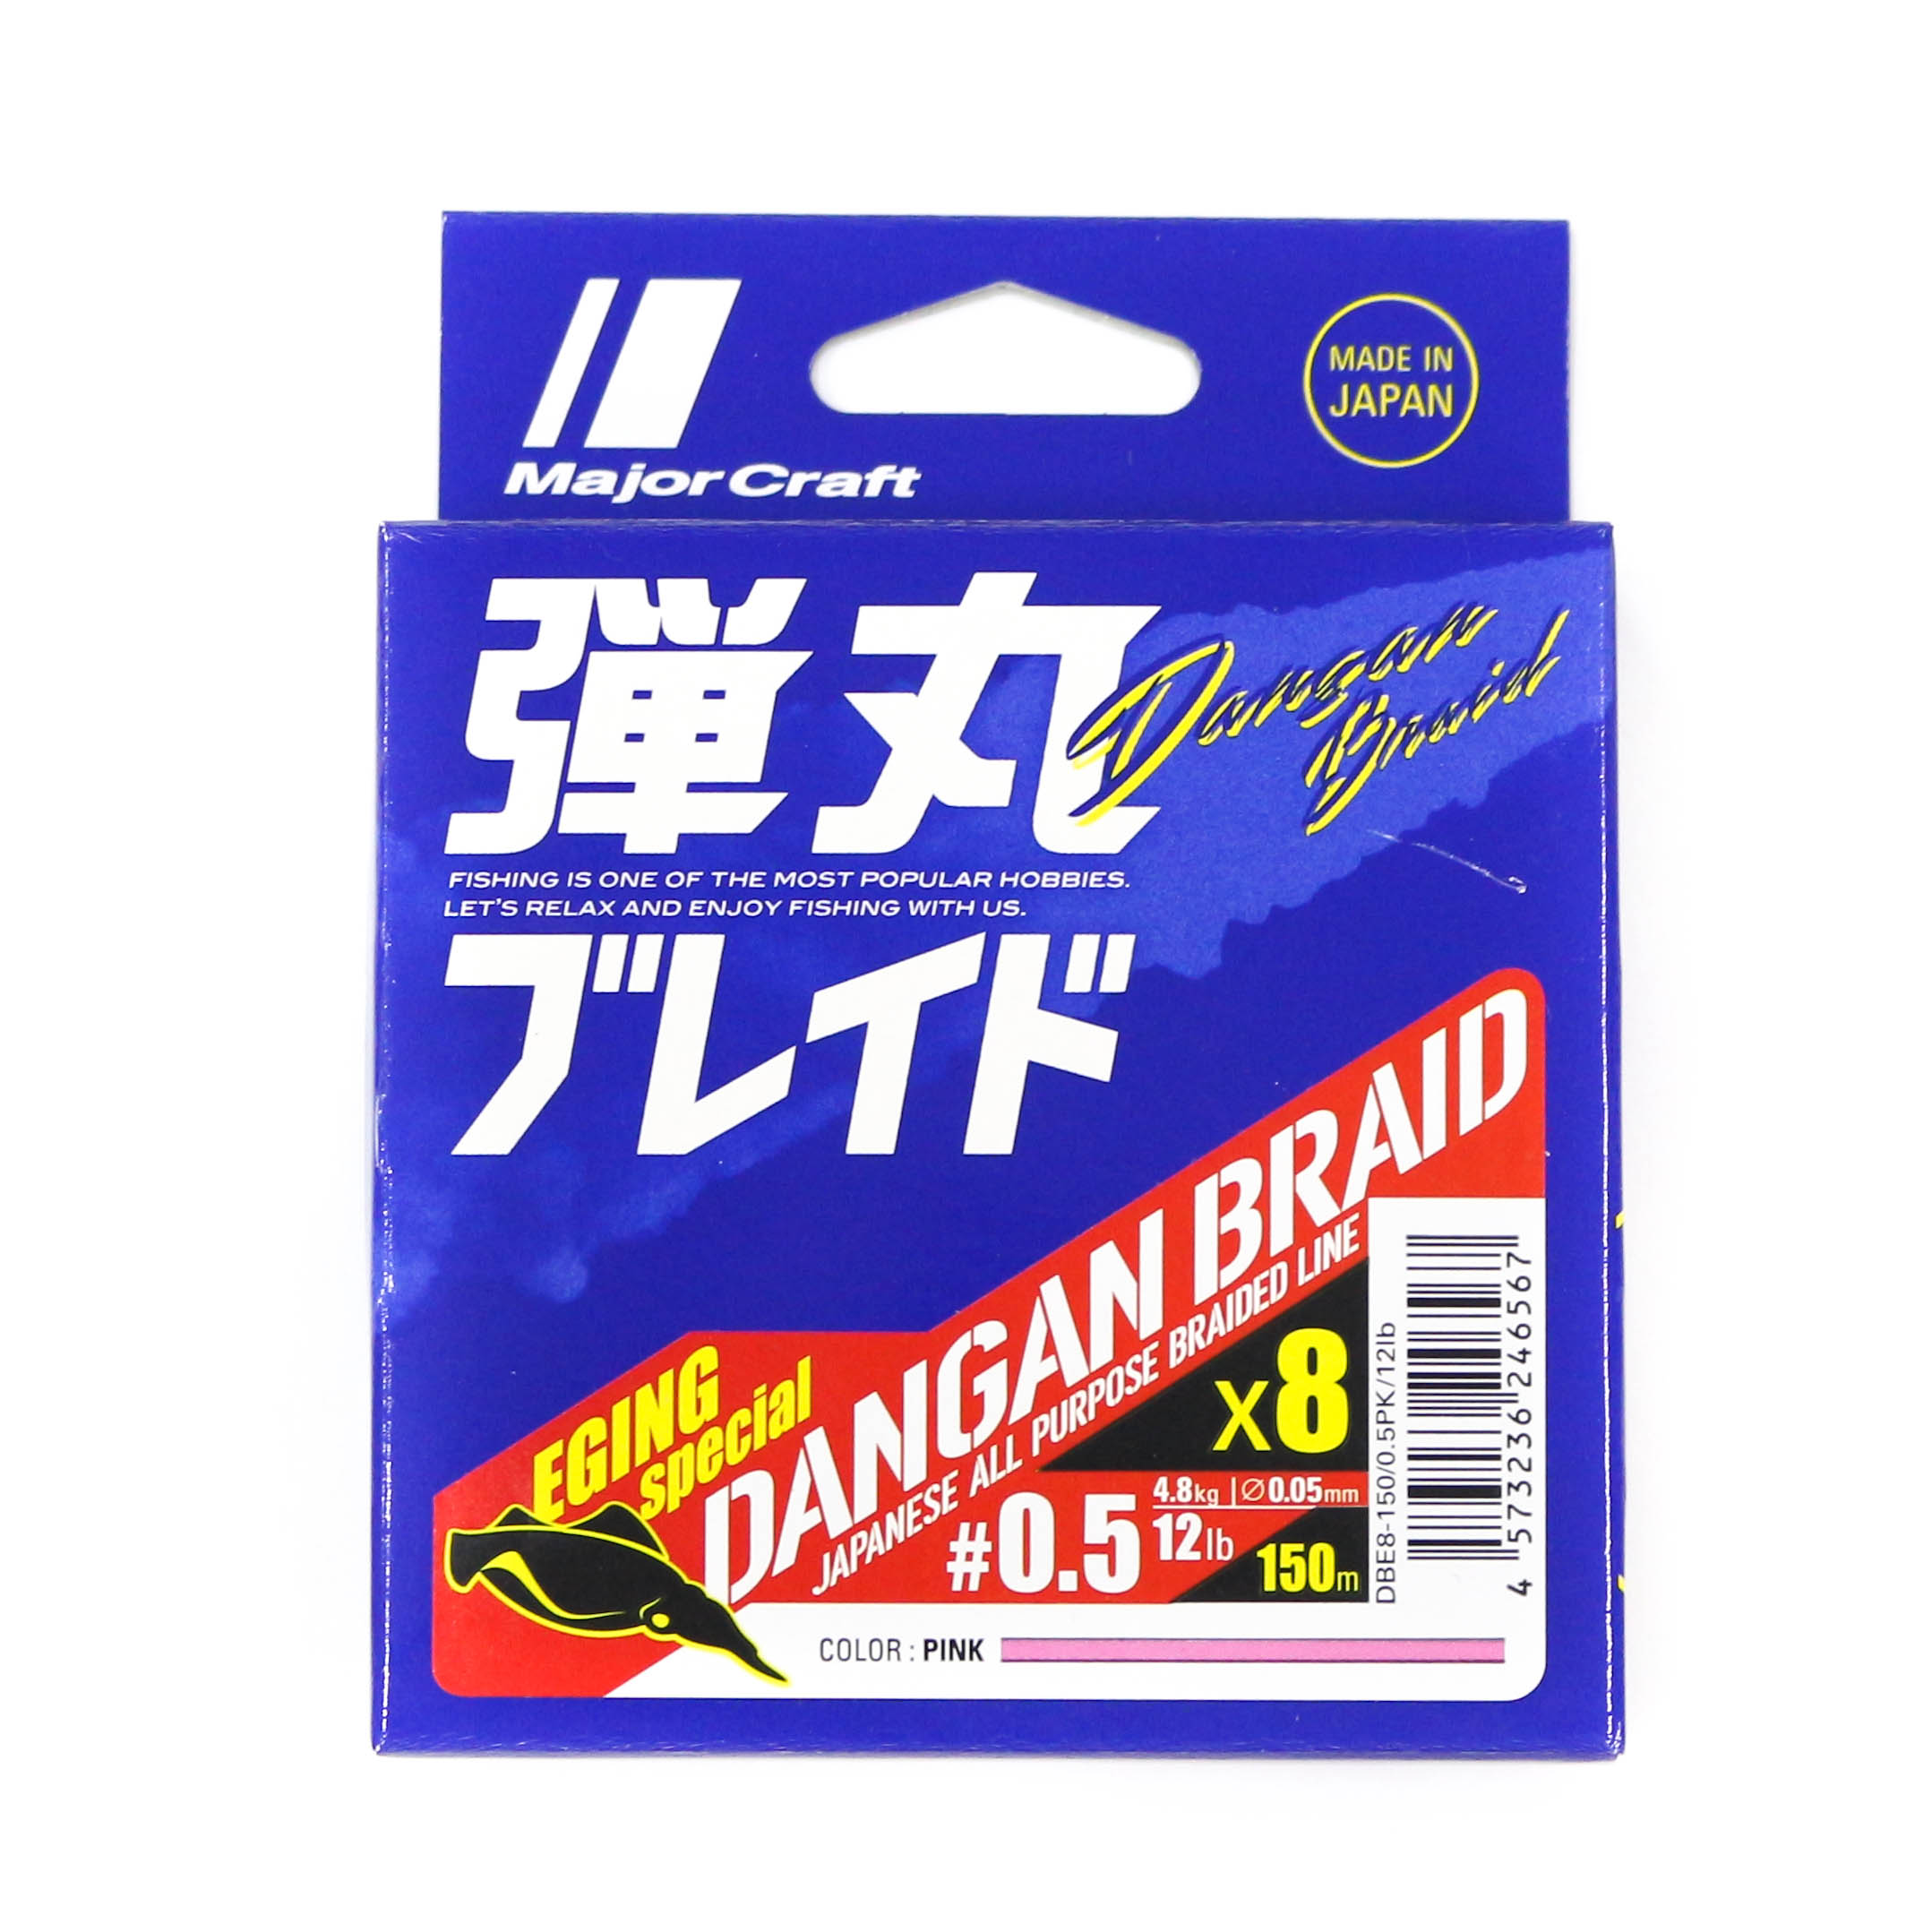 Major Craft Dangan Braided Line X8 150m P.E 0.5 Pink DBE8-150/0.5PK/12lb (6567)